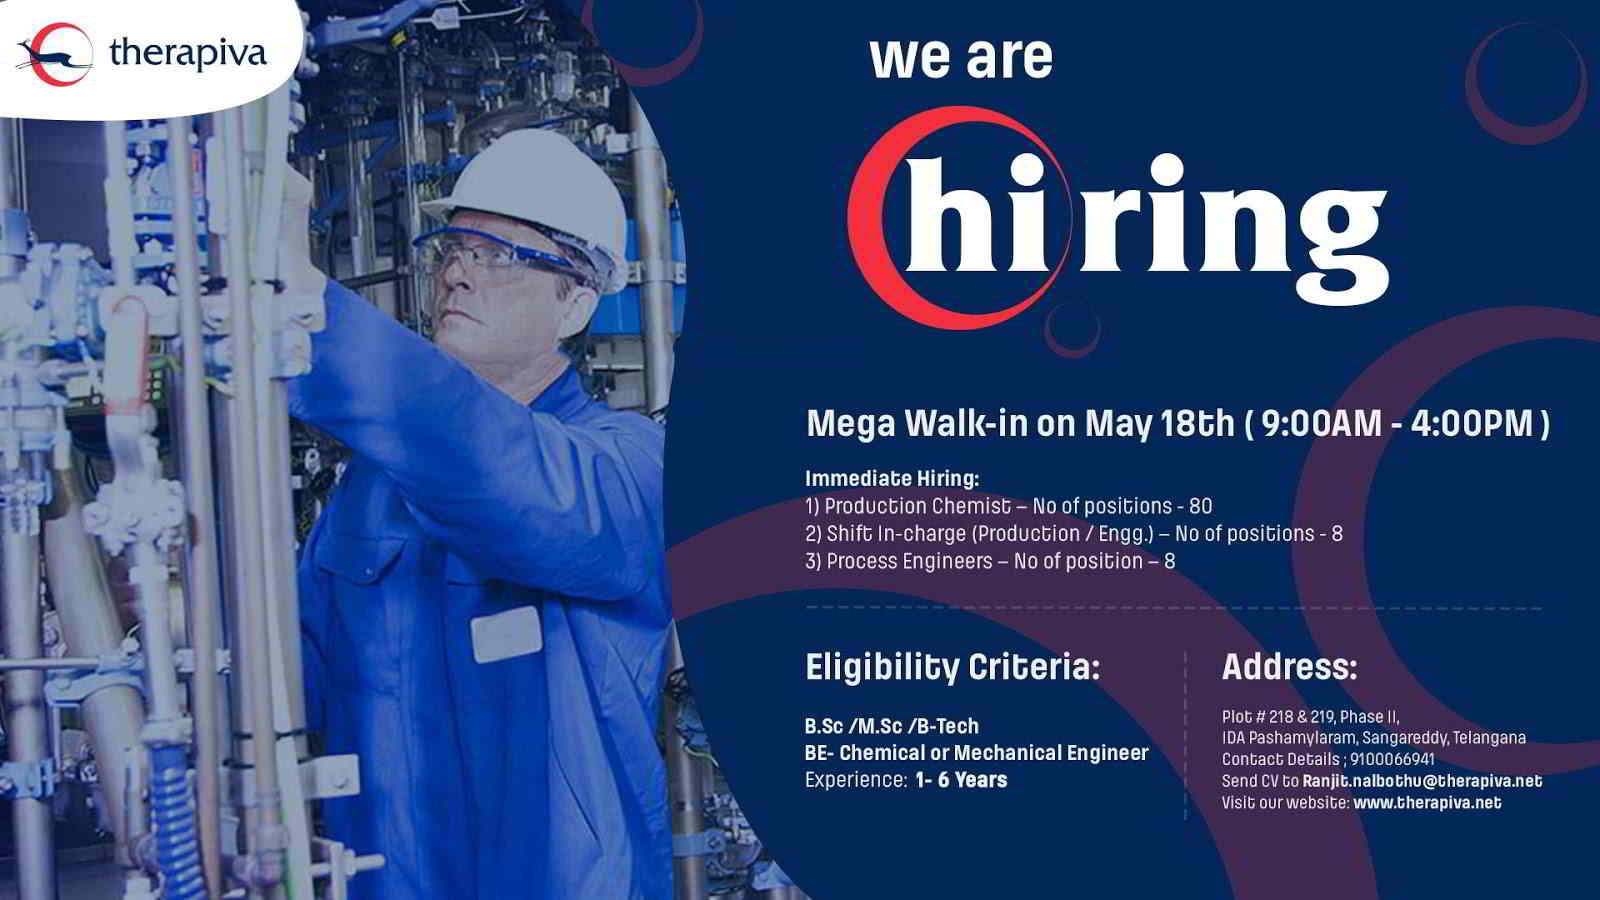 Therapiva Pvt Ltd - Mega Walk-in drive for multiple positions on